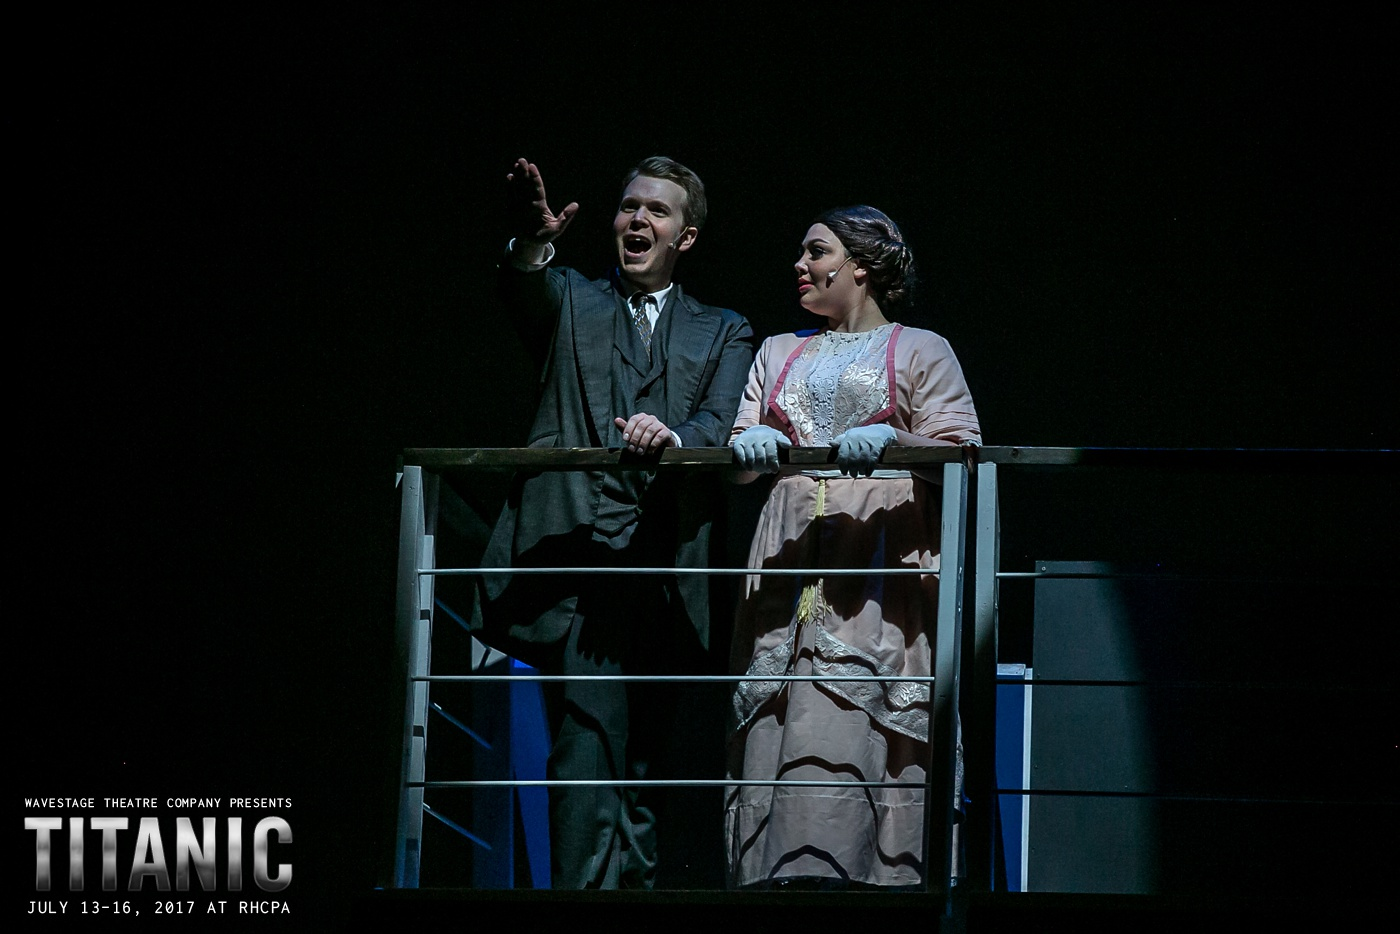 titanic-musical-richmond-hill-theatre-toronto_0046.jpg